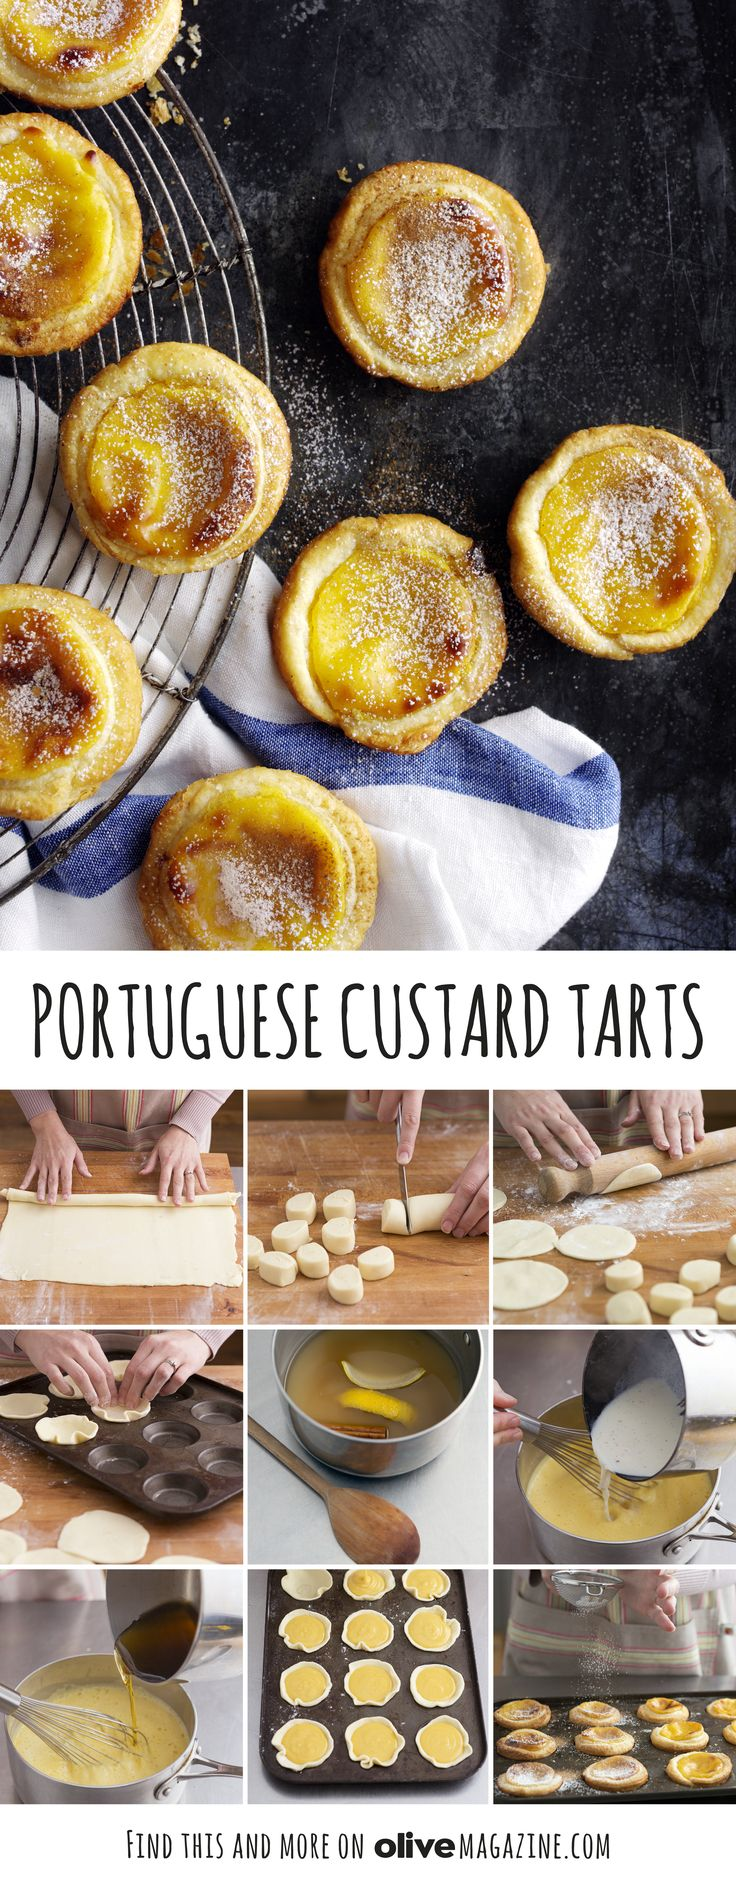 Make classic Portuguese custard tarts Pastéis de Nata with step-by-step help from the olive test kitchen. Dusting the pastry with icing sugar gives the tarts a golden, caramelised crust when cooked